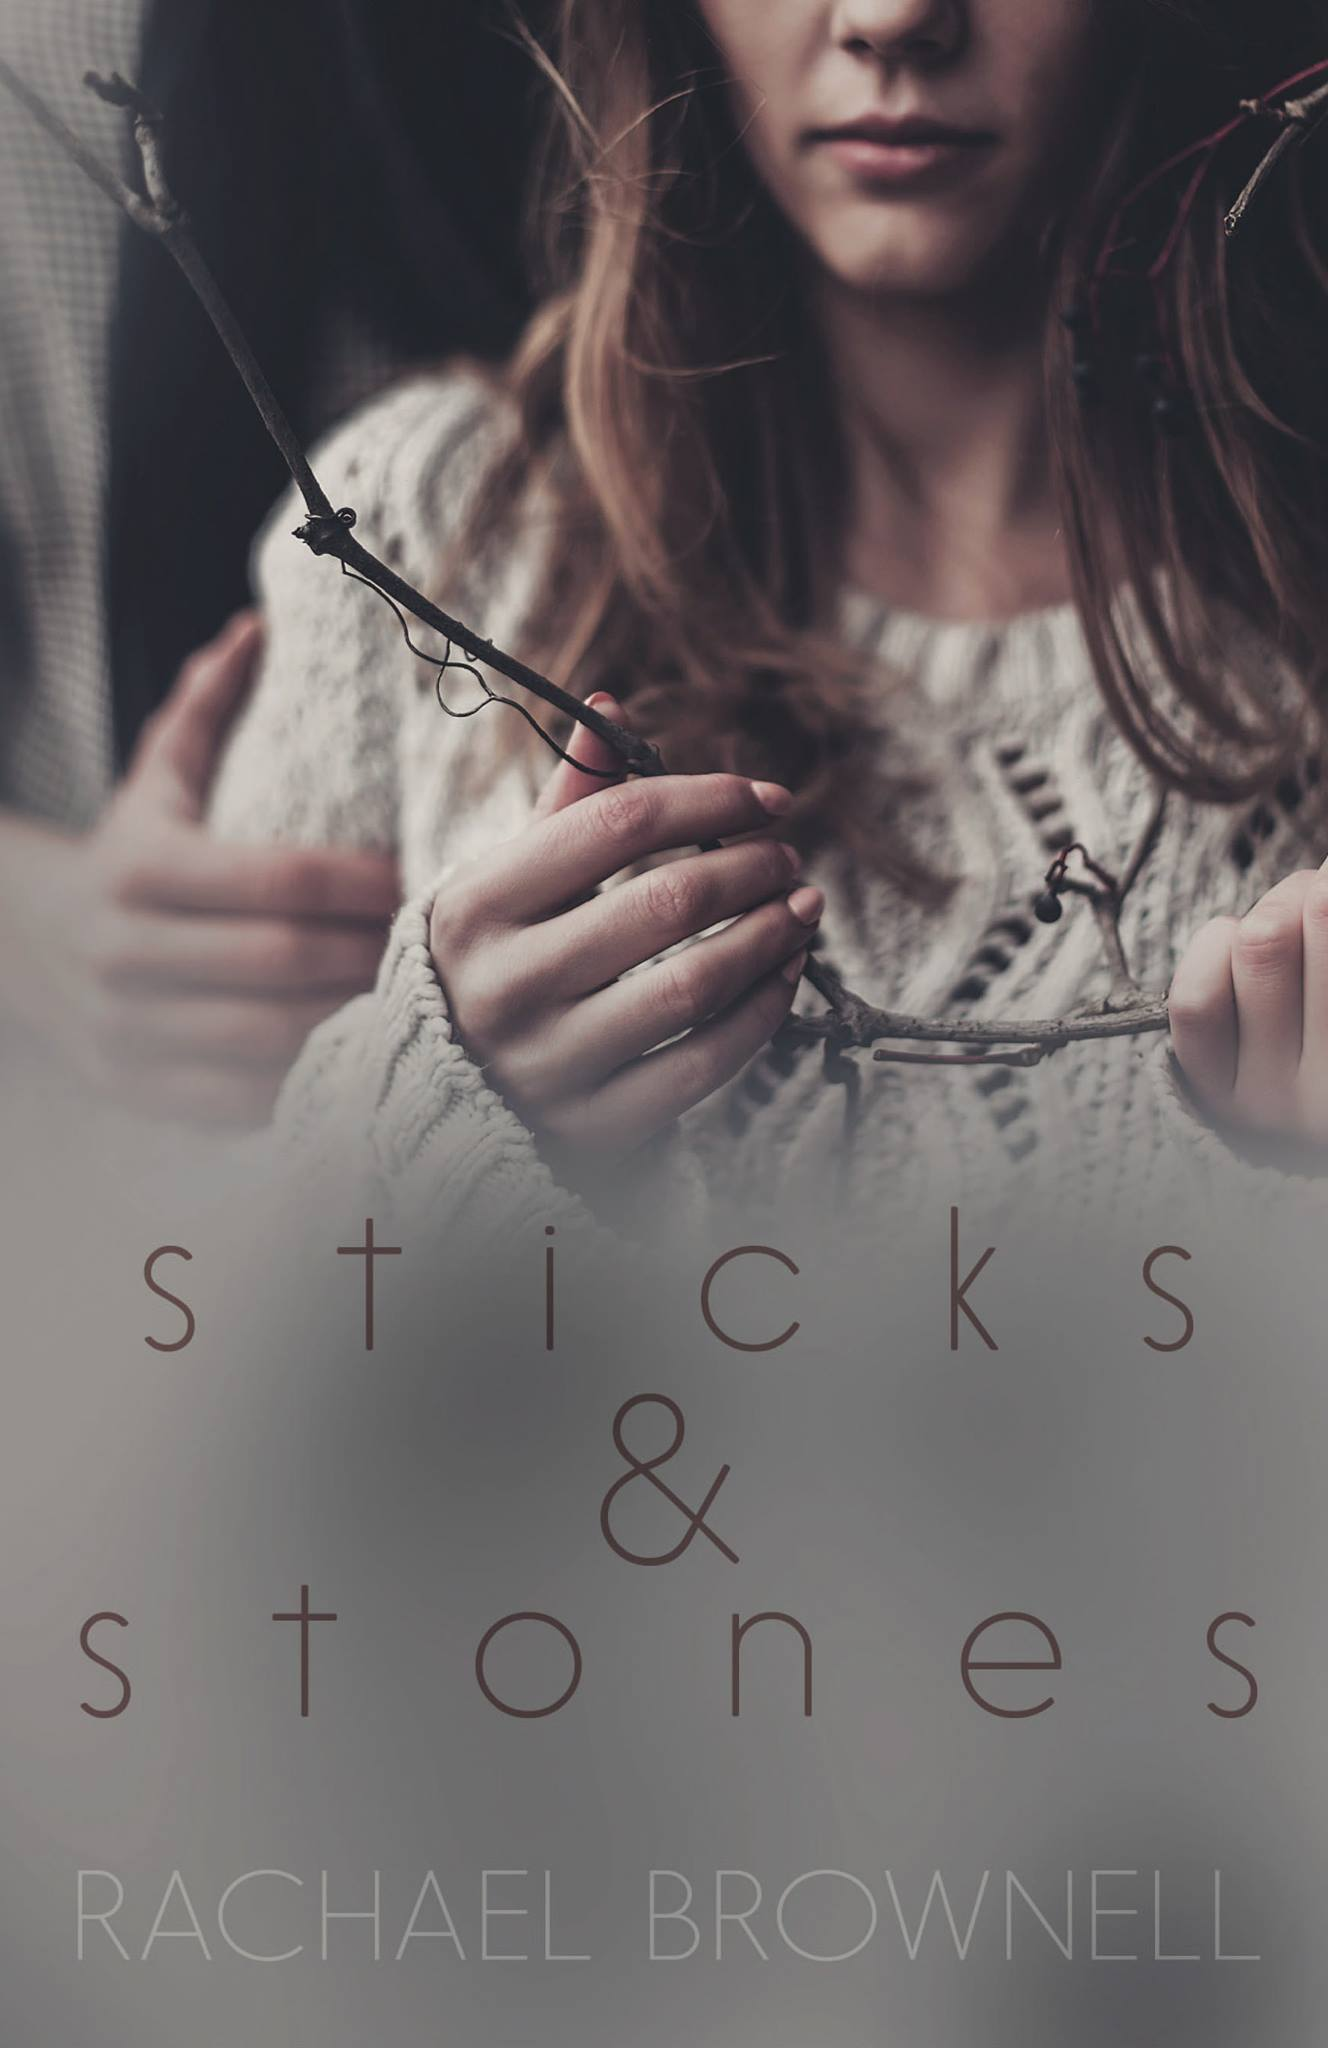 Sticks & Stones Rachael Brownell